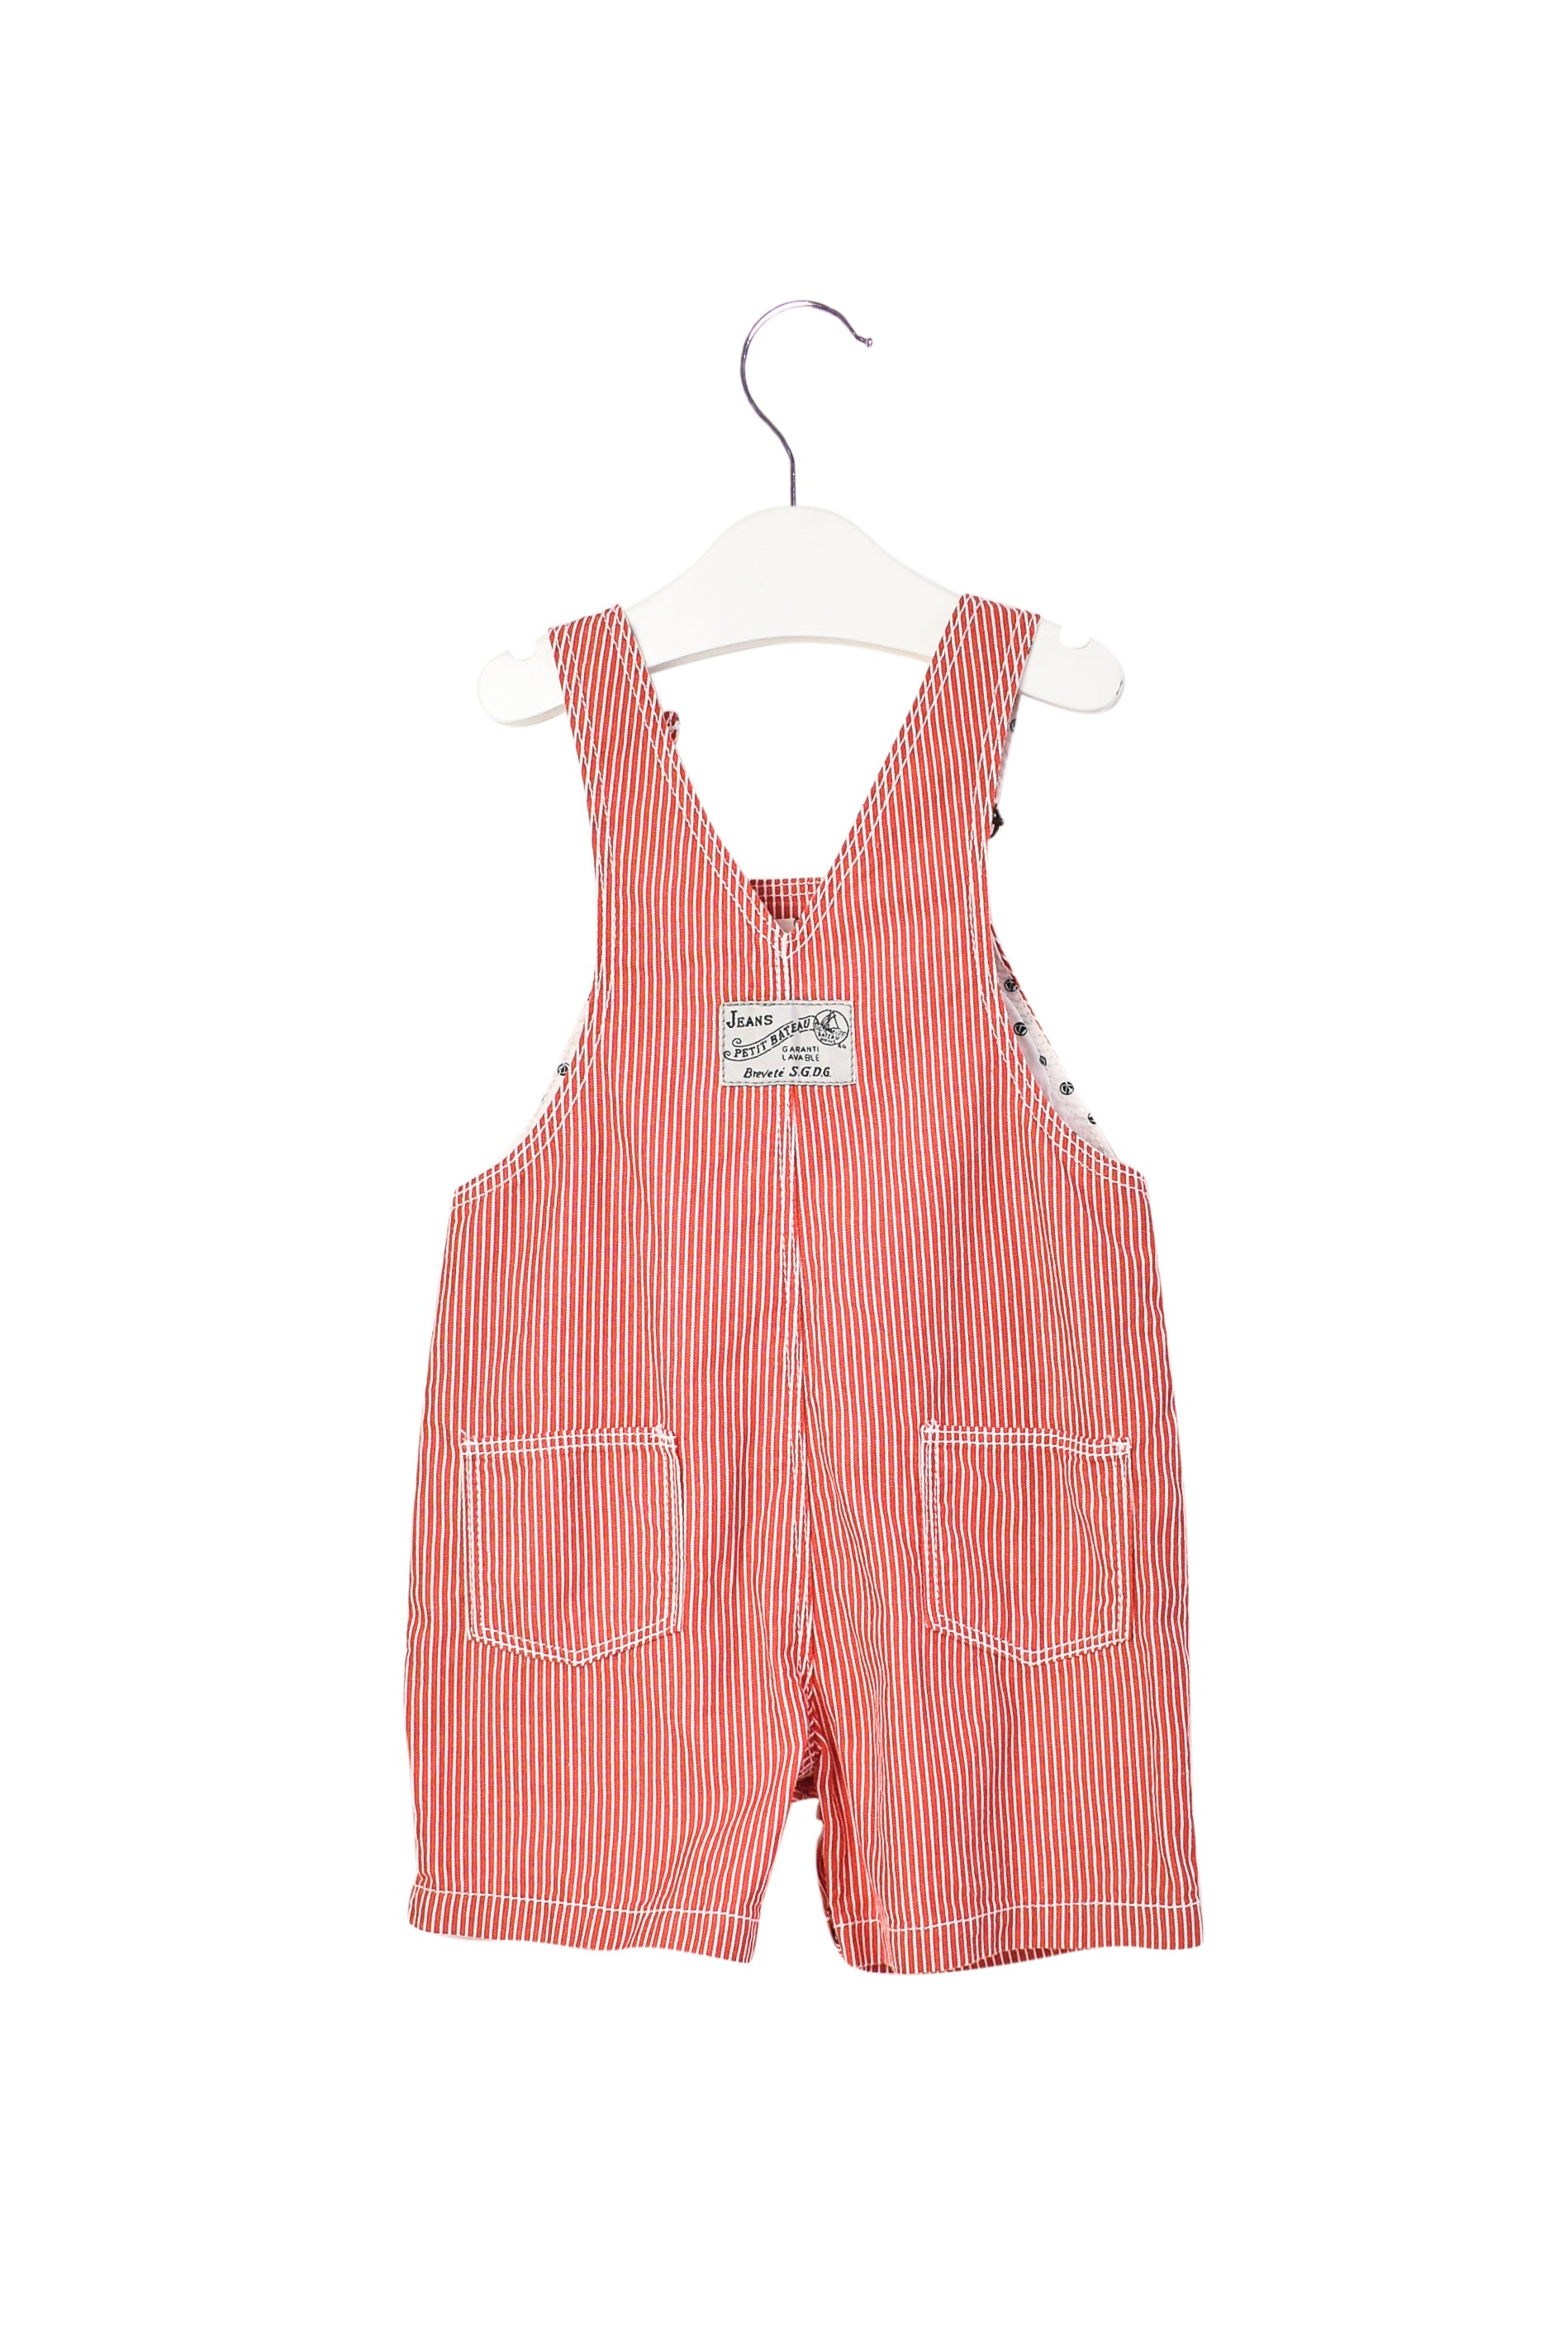 10007144 Petit Bateau Baby ~ Overall 6M at Retykle